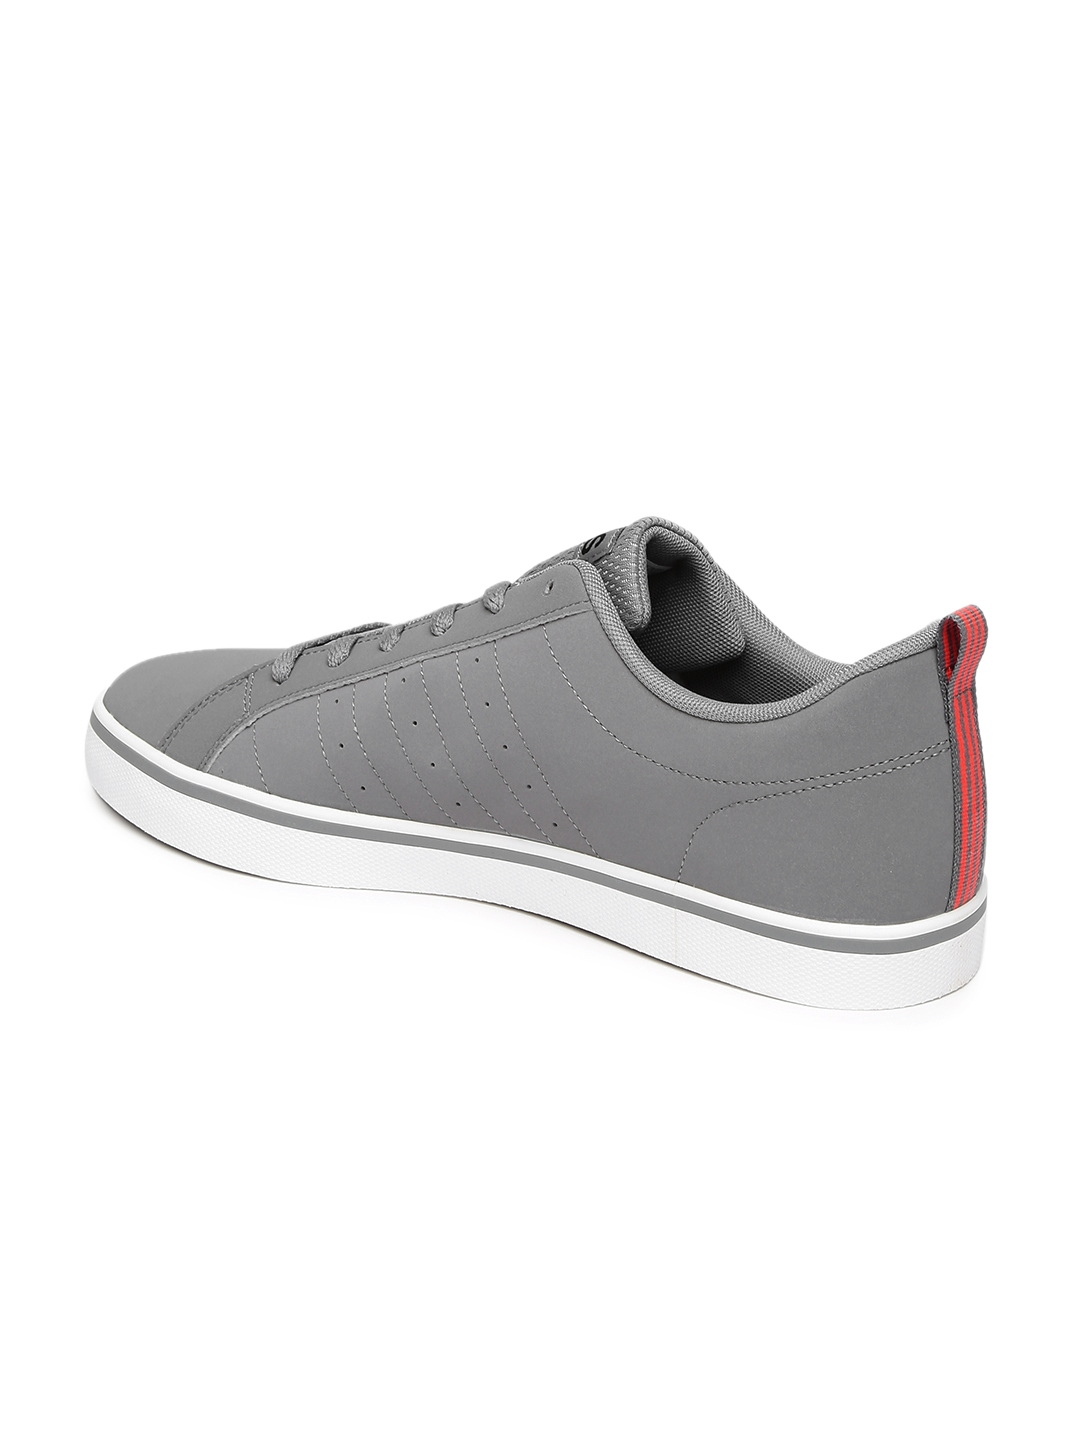 14136c84101f8b Buy ADIDAS NEO Men Grey VS Pace Sneakers - Casual Shoes for Men ...